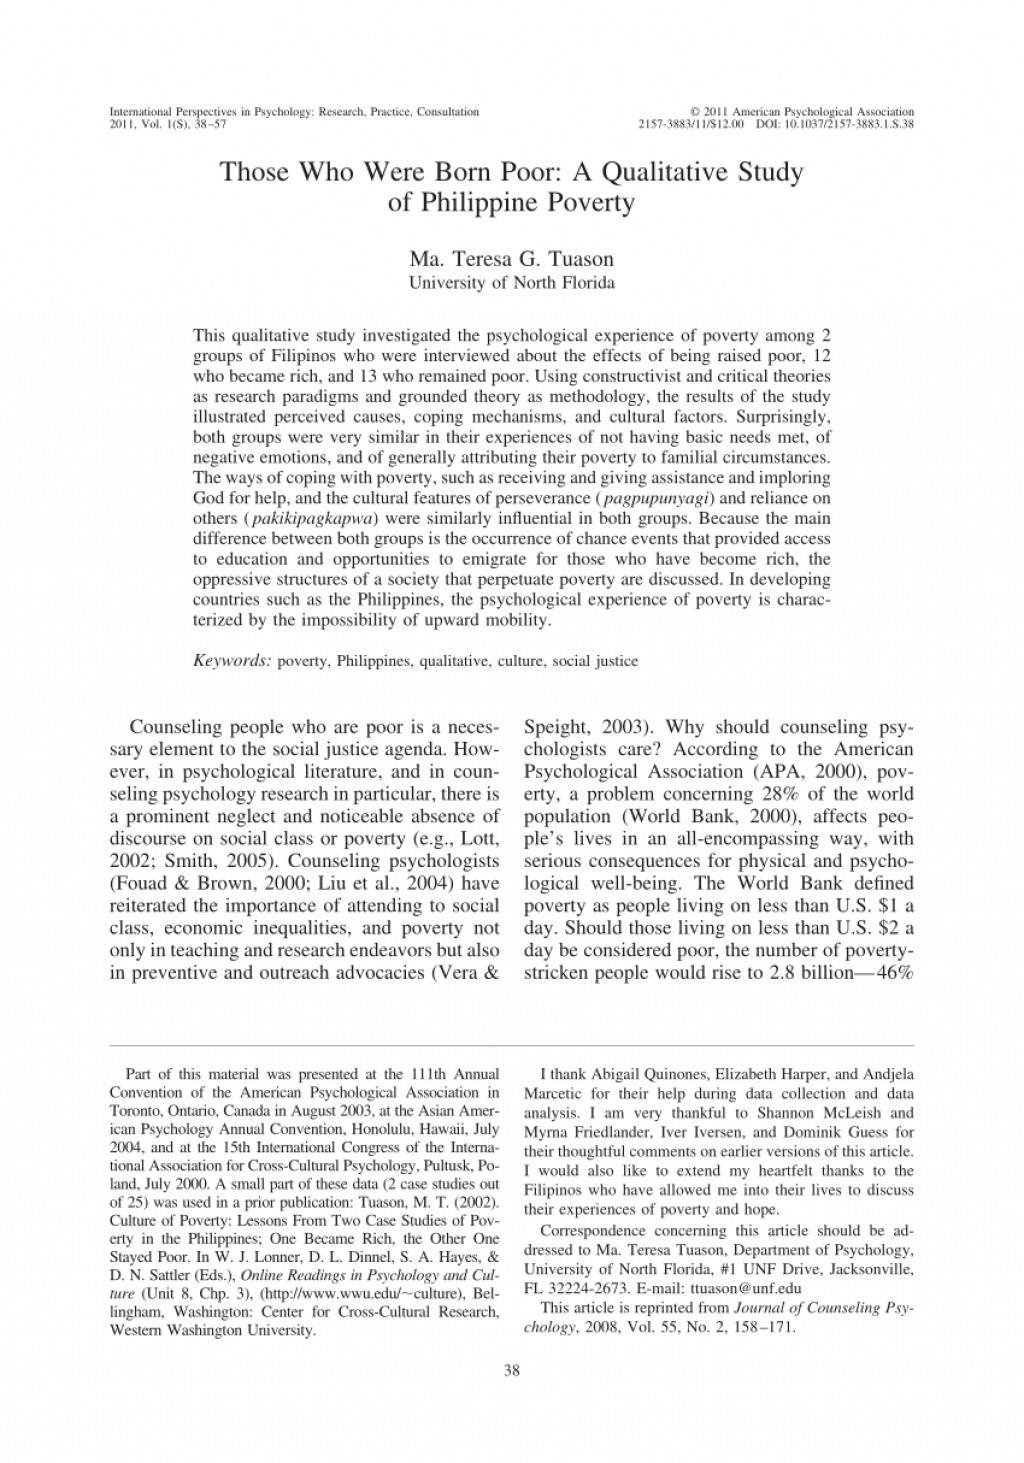 002 Poverty In The Philippines Research Paper Pdf Impressive Large